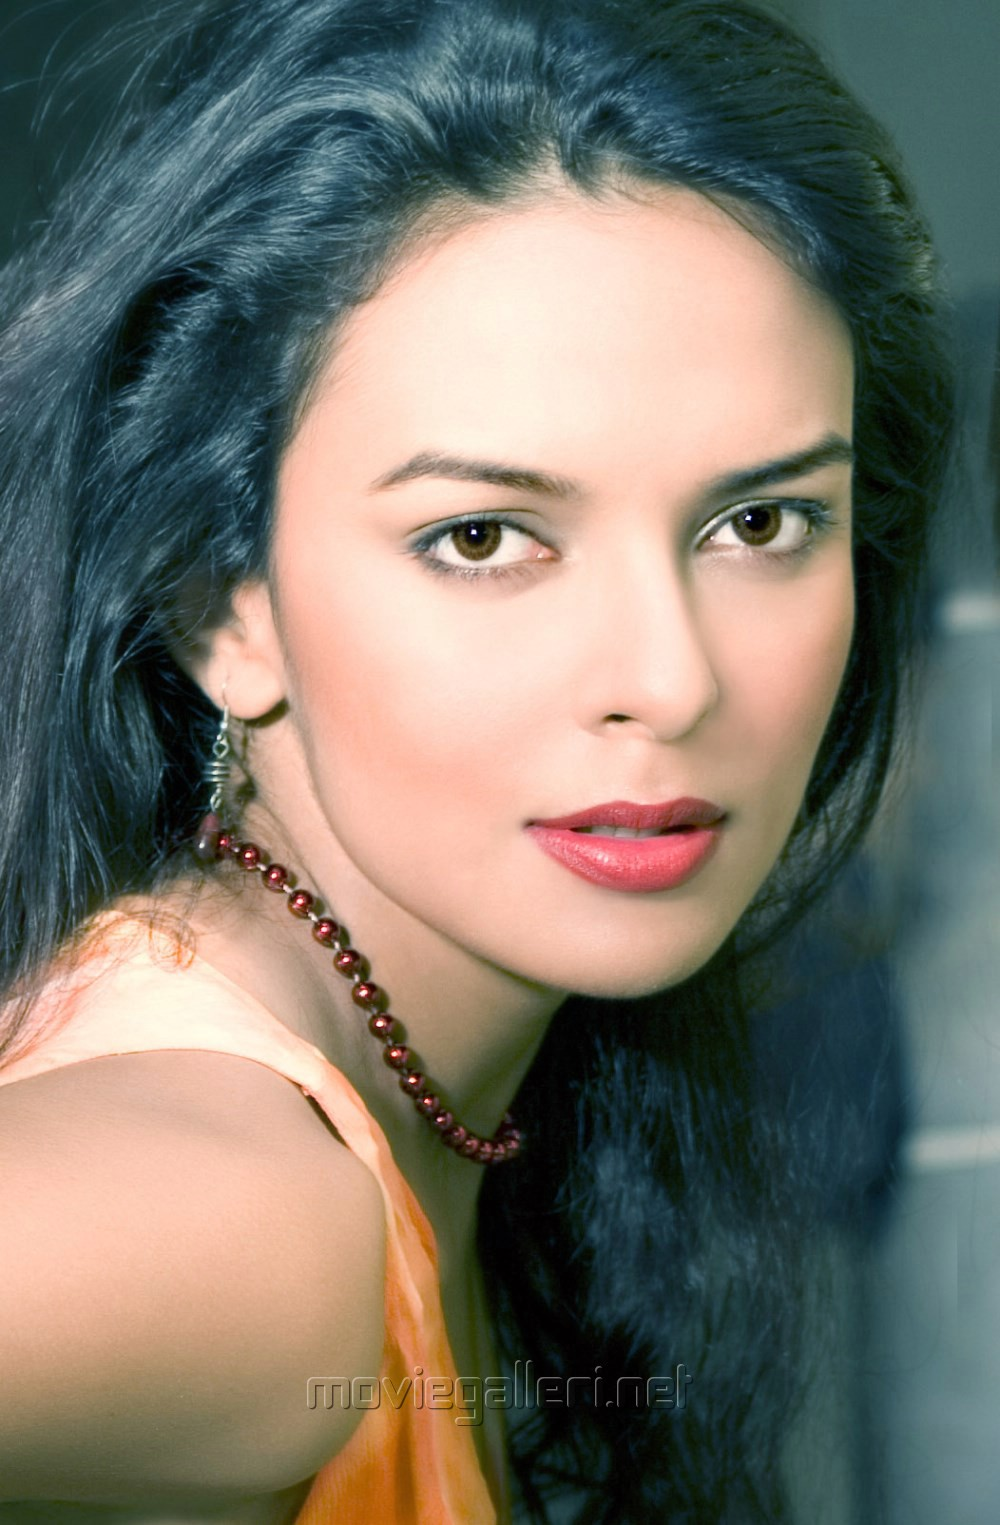 bidita bag picsbidita bag age, bidita bag instagram, bidita bag movies, bidita bag facebook, bidita bag, bidita bag hot, bidita bag kiss, bidita bag bikini, bidita bag feet, bidita bag hot scene, bidita bag sunny leone, bidita bag santabanta, bidita bag pics, bidita bag photos, bidita bag wallpaper, bidita bag navel, bidita bag imdb, bidita bag upcoming movie, bidita bag images, bidita bag icche